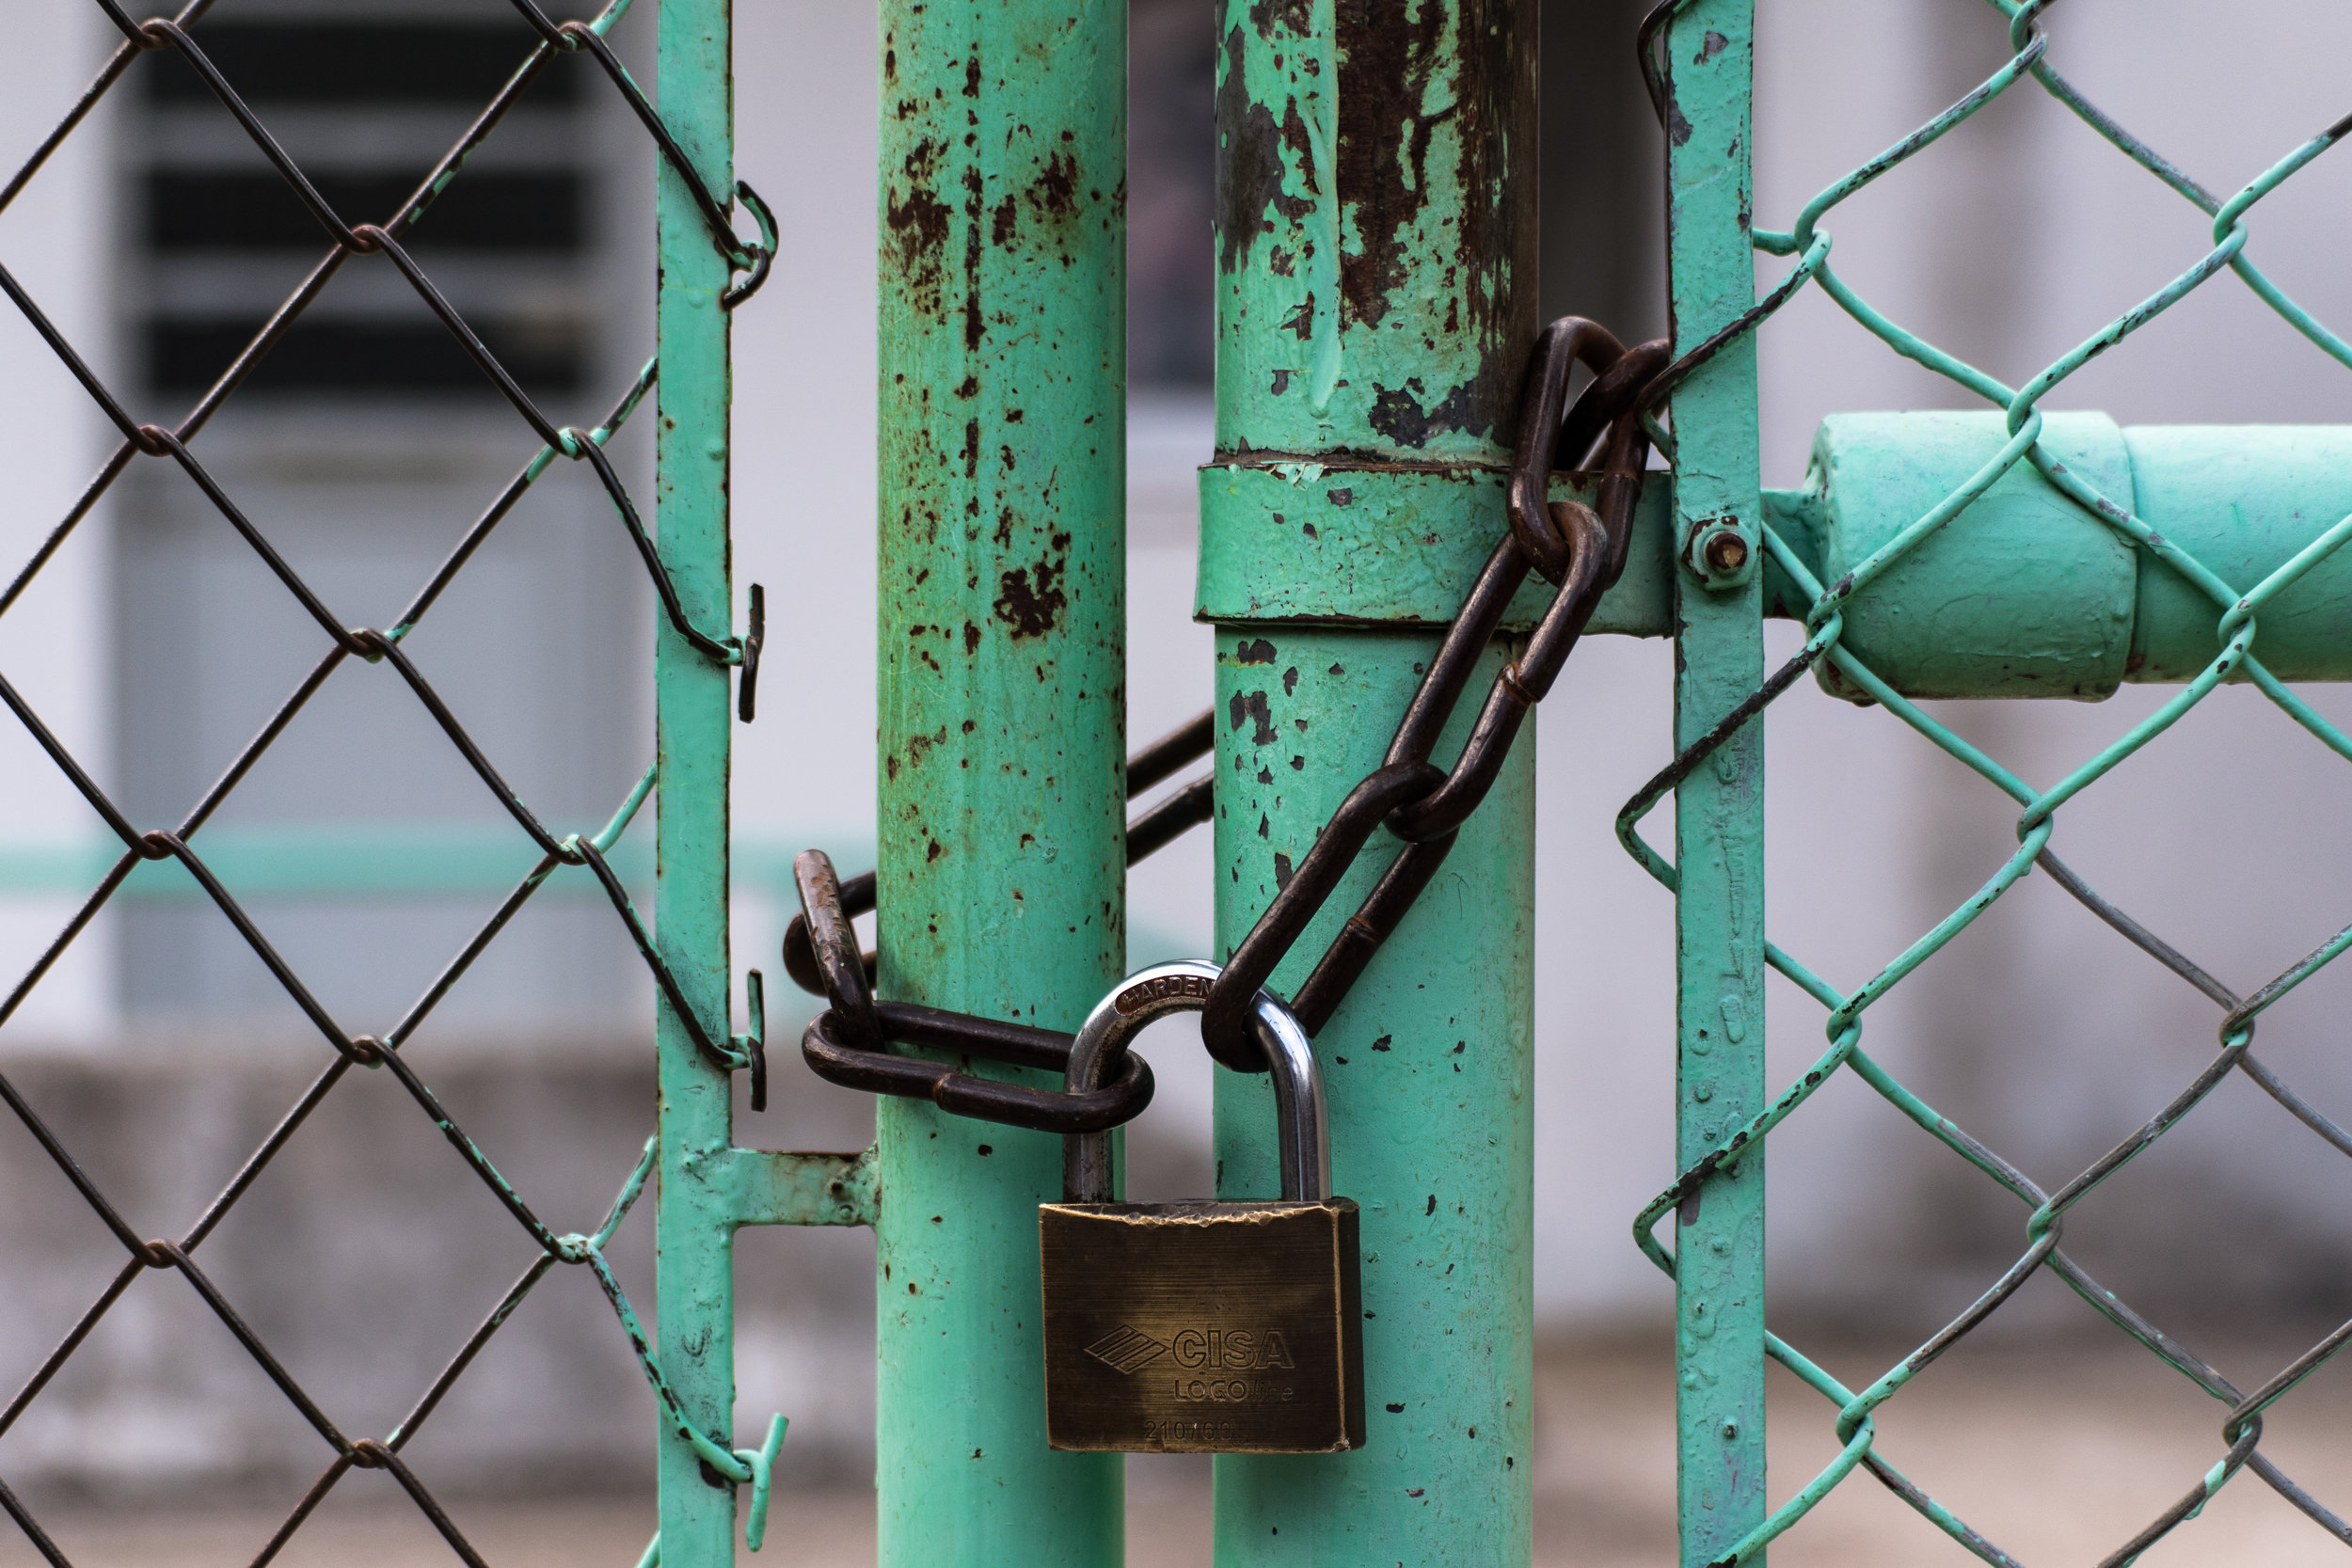 Check your Sheds & Outbuildings - Please ensure your sheds and outbuildings are locked and secure. We have had a report of a break in to an outbuilding last week.31st July 2019